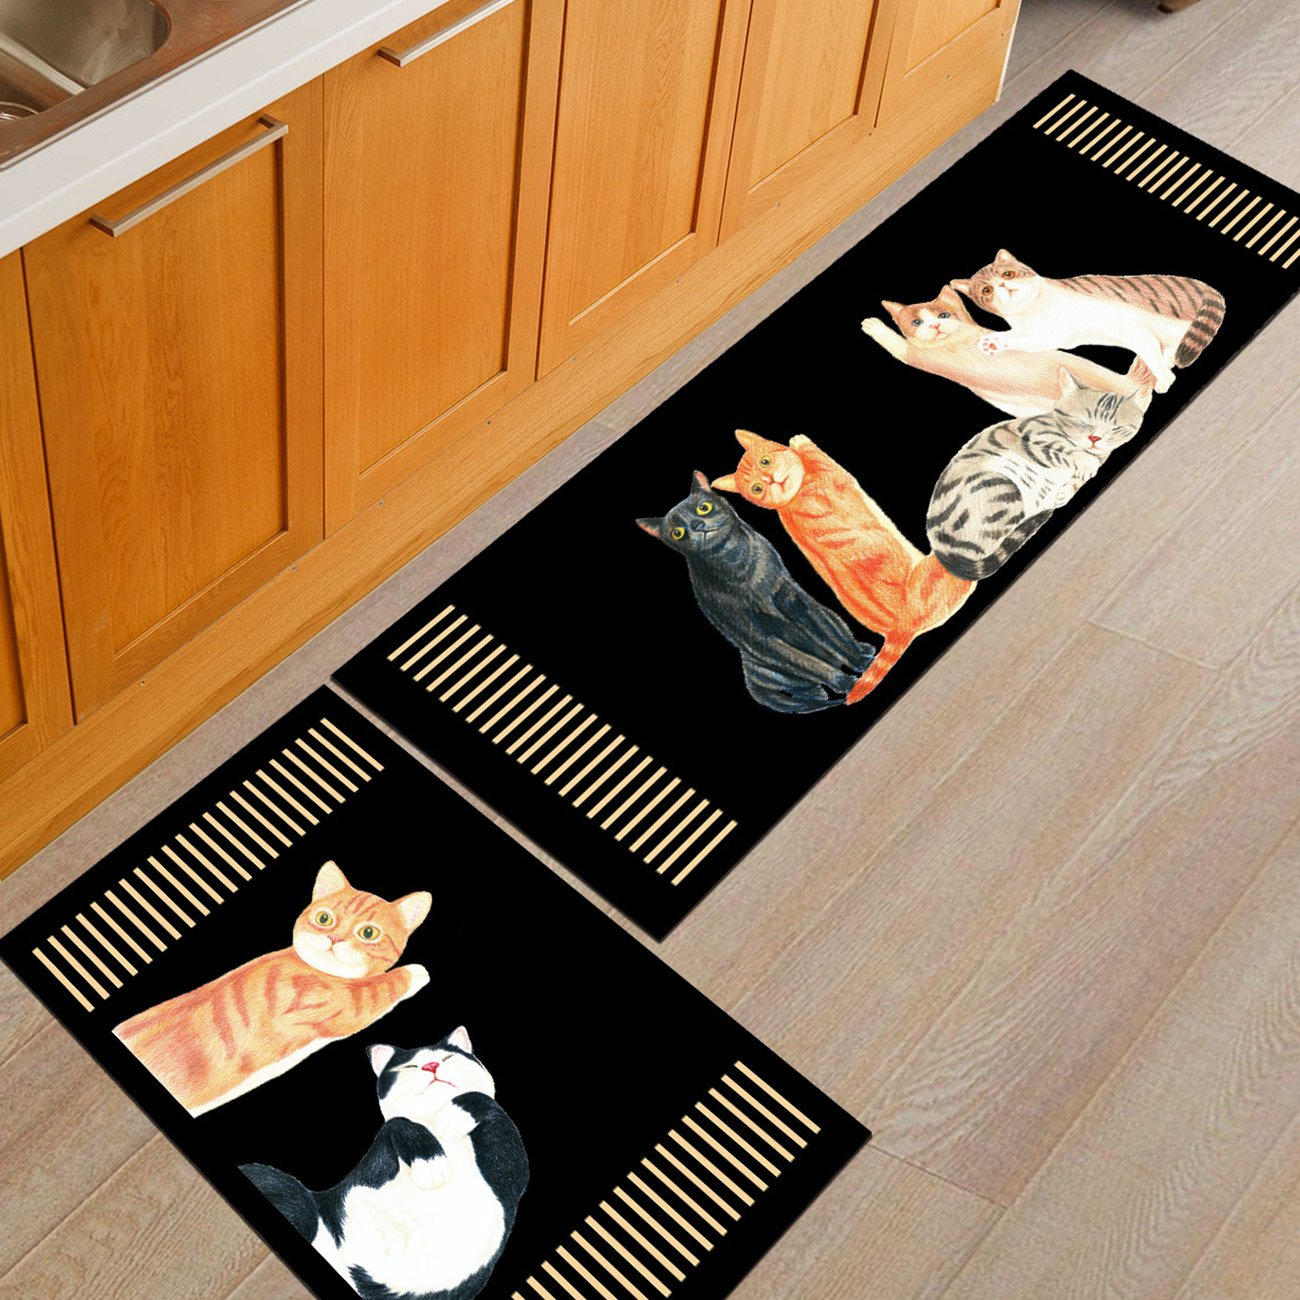 THEE Non-Slip Kitchen Mat Rubber Backing Doormat Runner Rug 2pcs Set